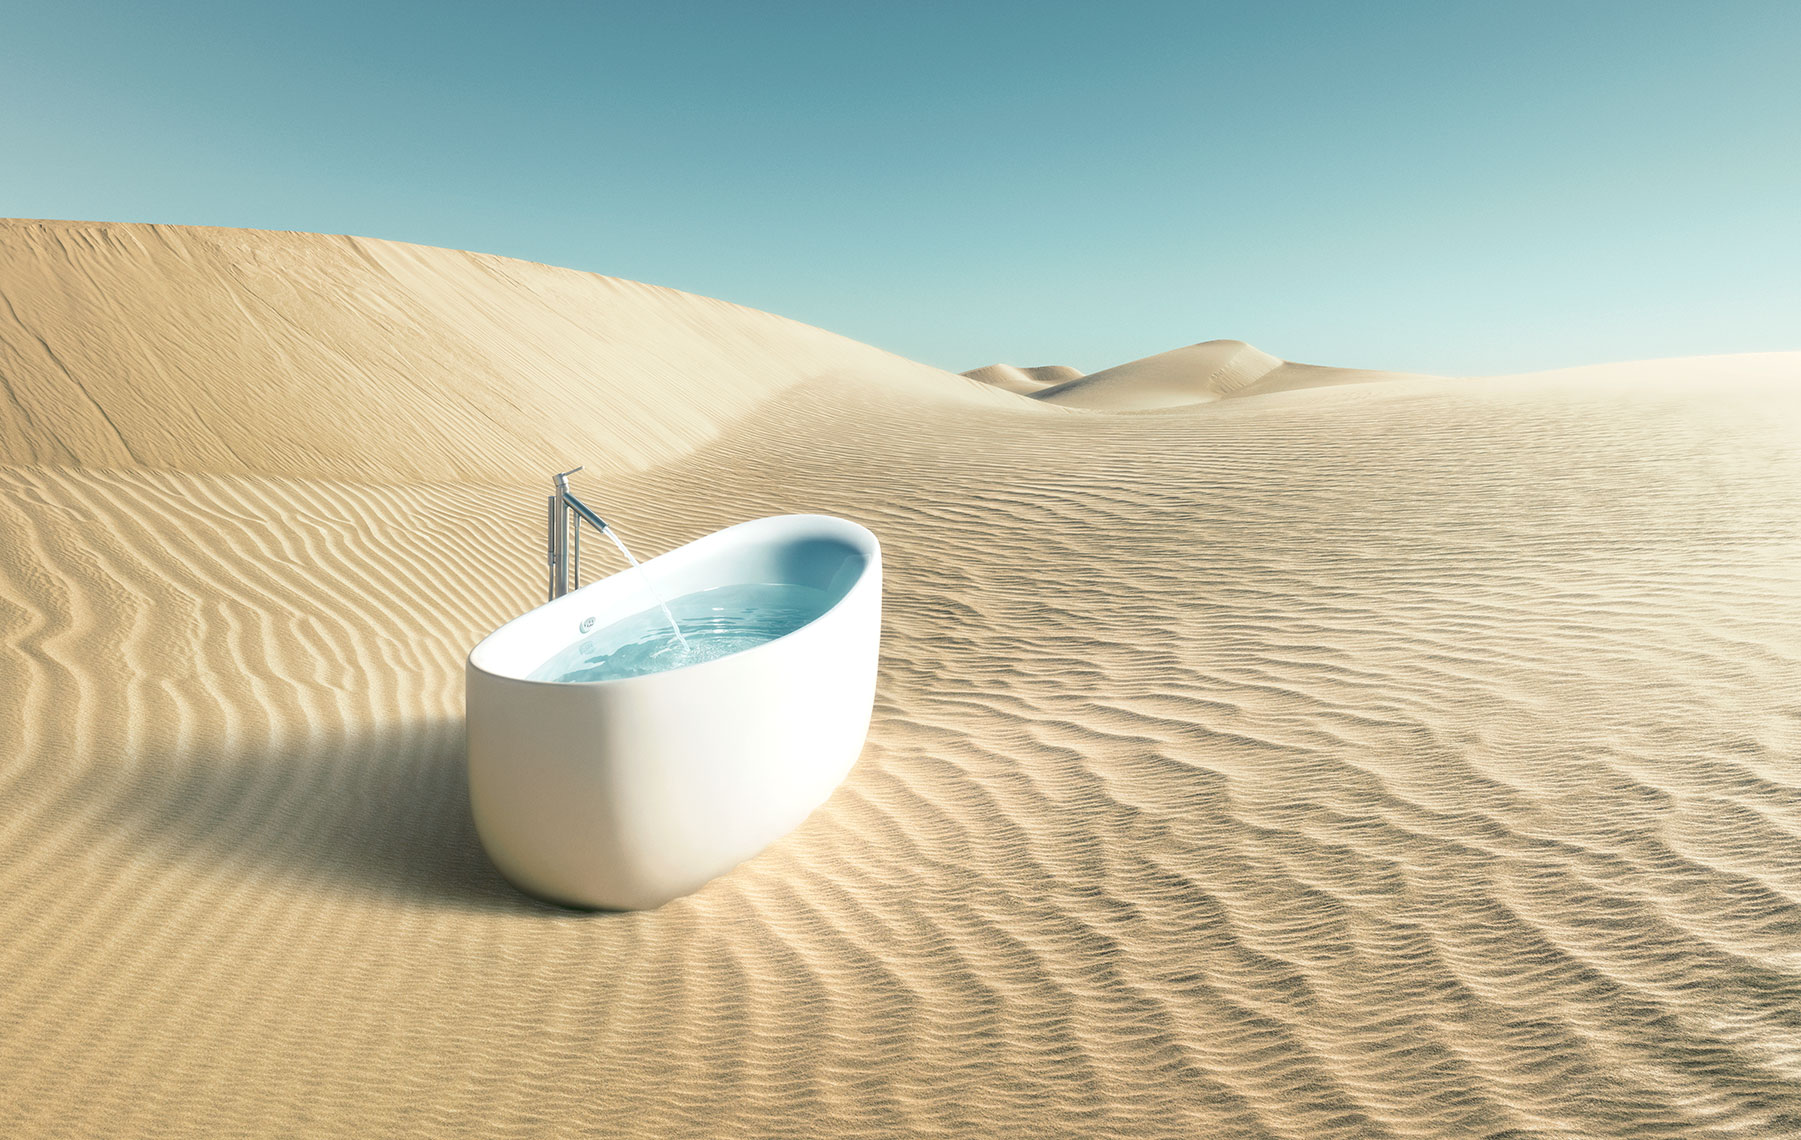 expo bathtub